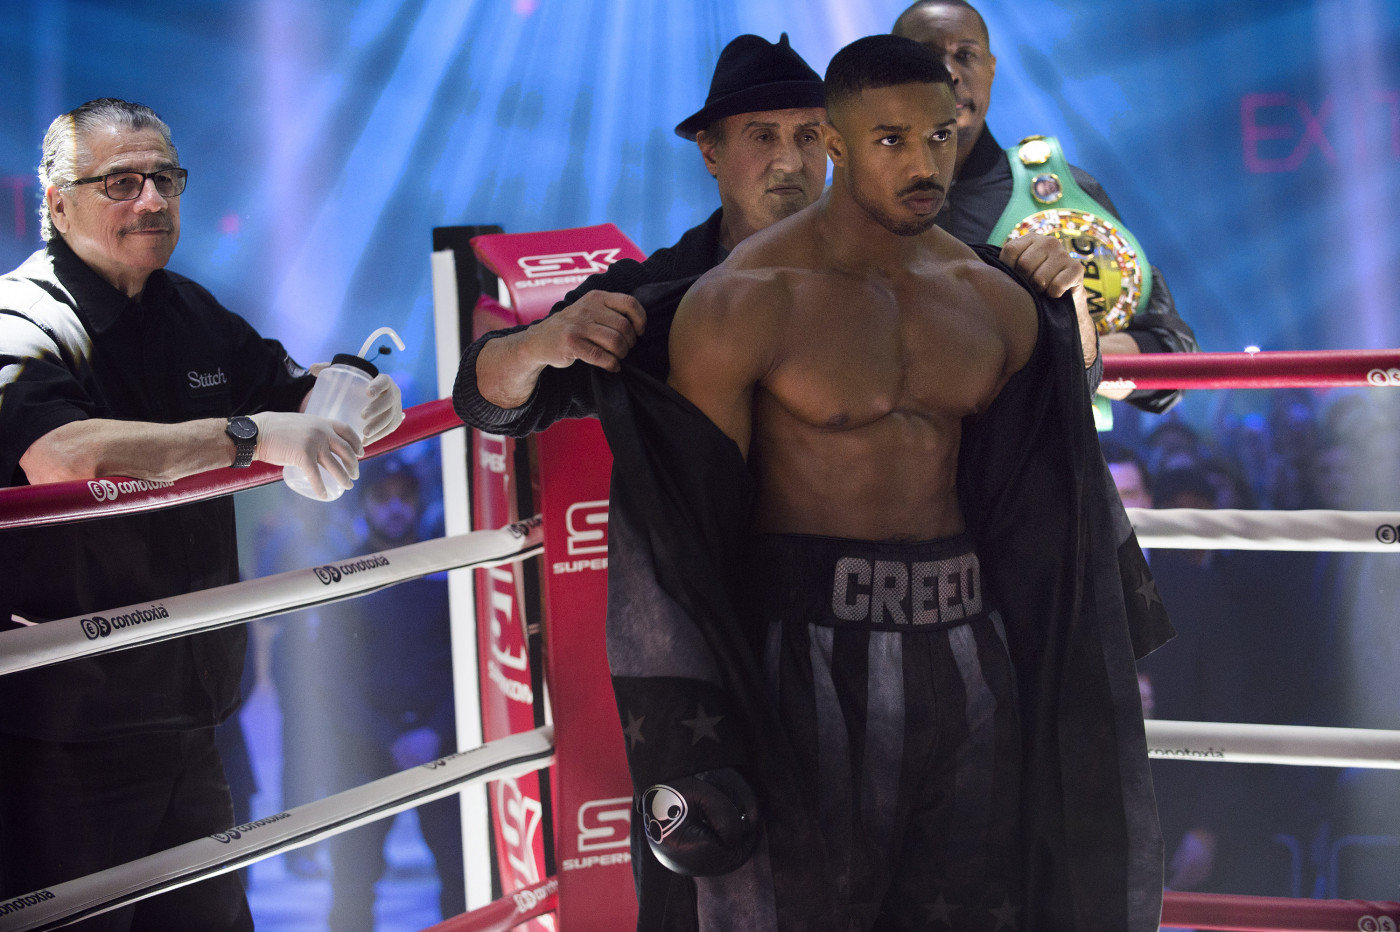 2019_01_25_Creed II_013jpg